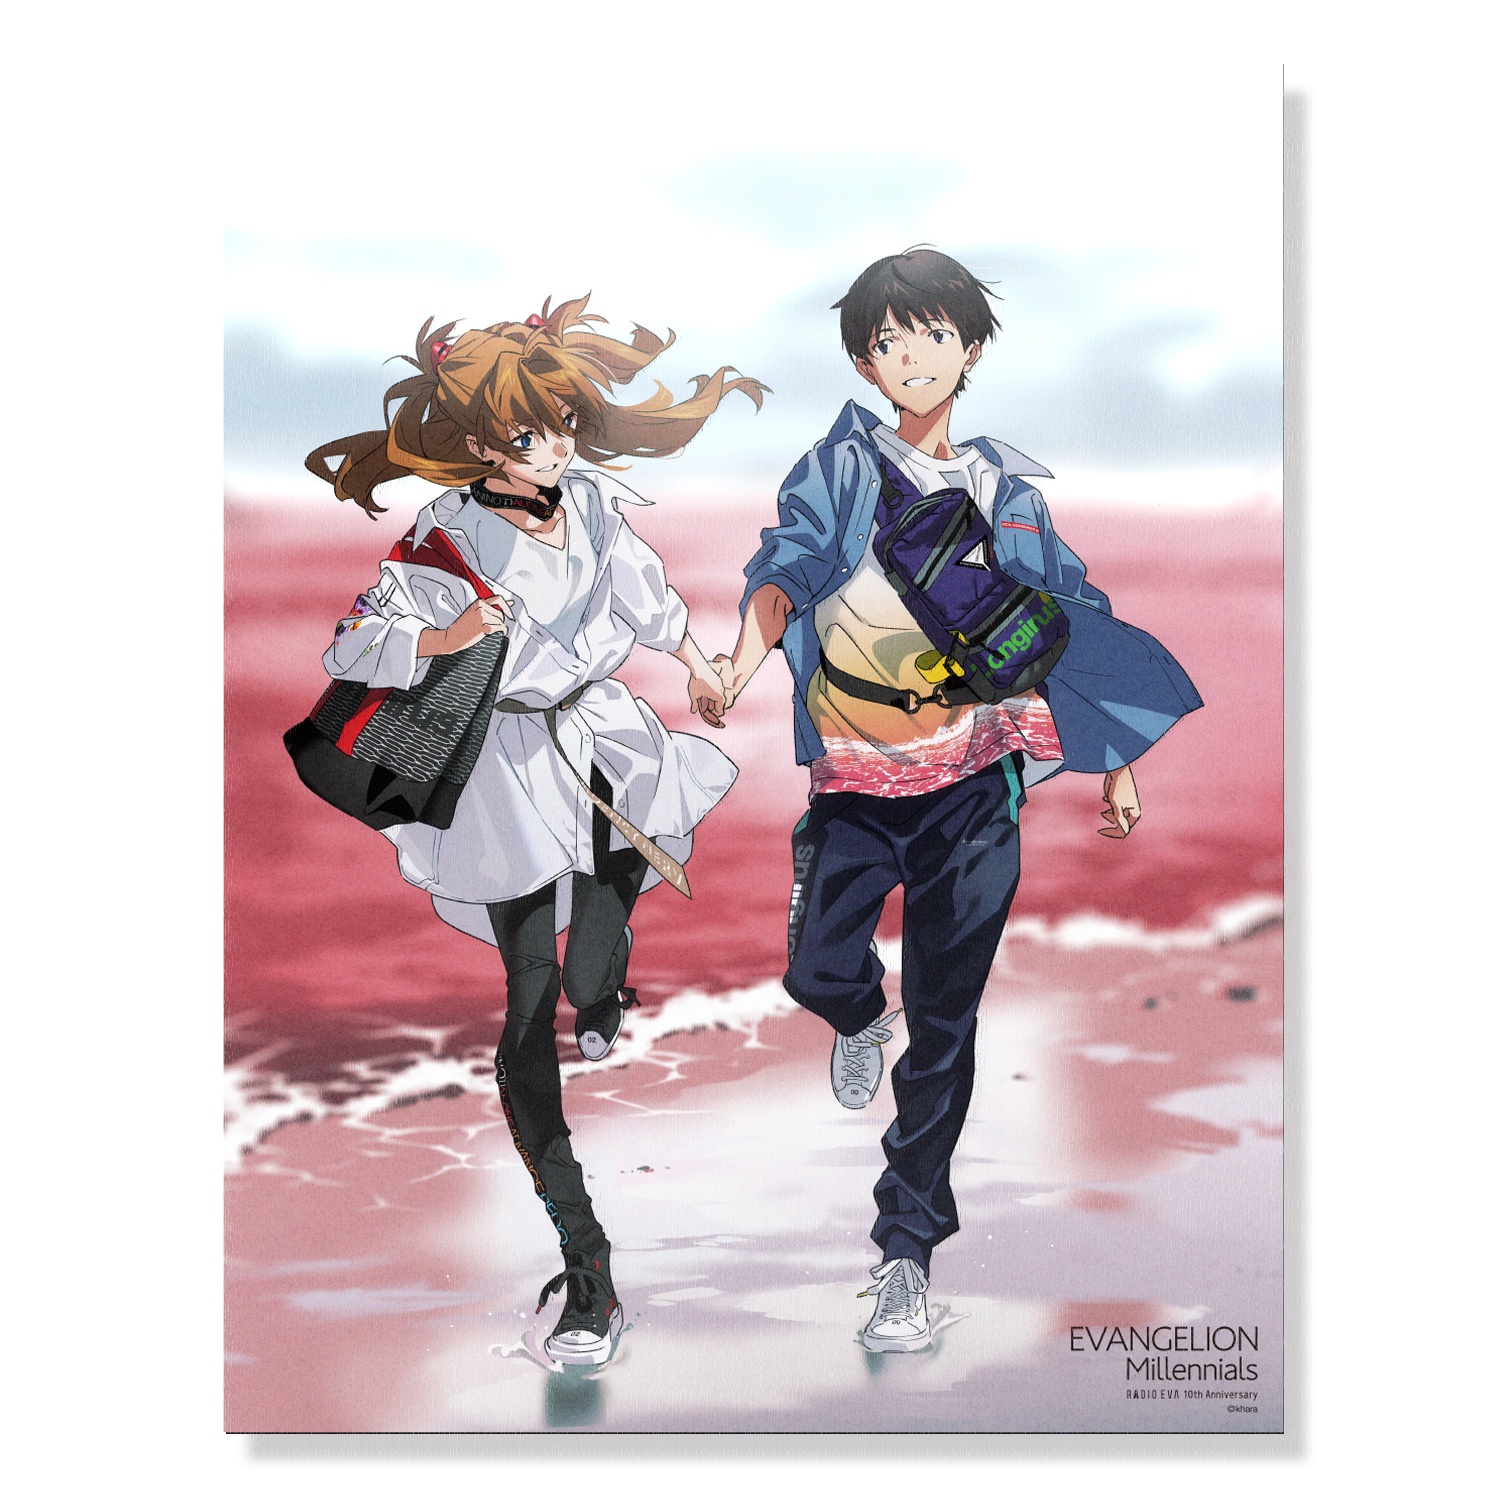 EVA Canvas Art (illustration)シンジ&アスカ(EVANGELION Millennials)